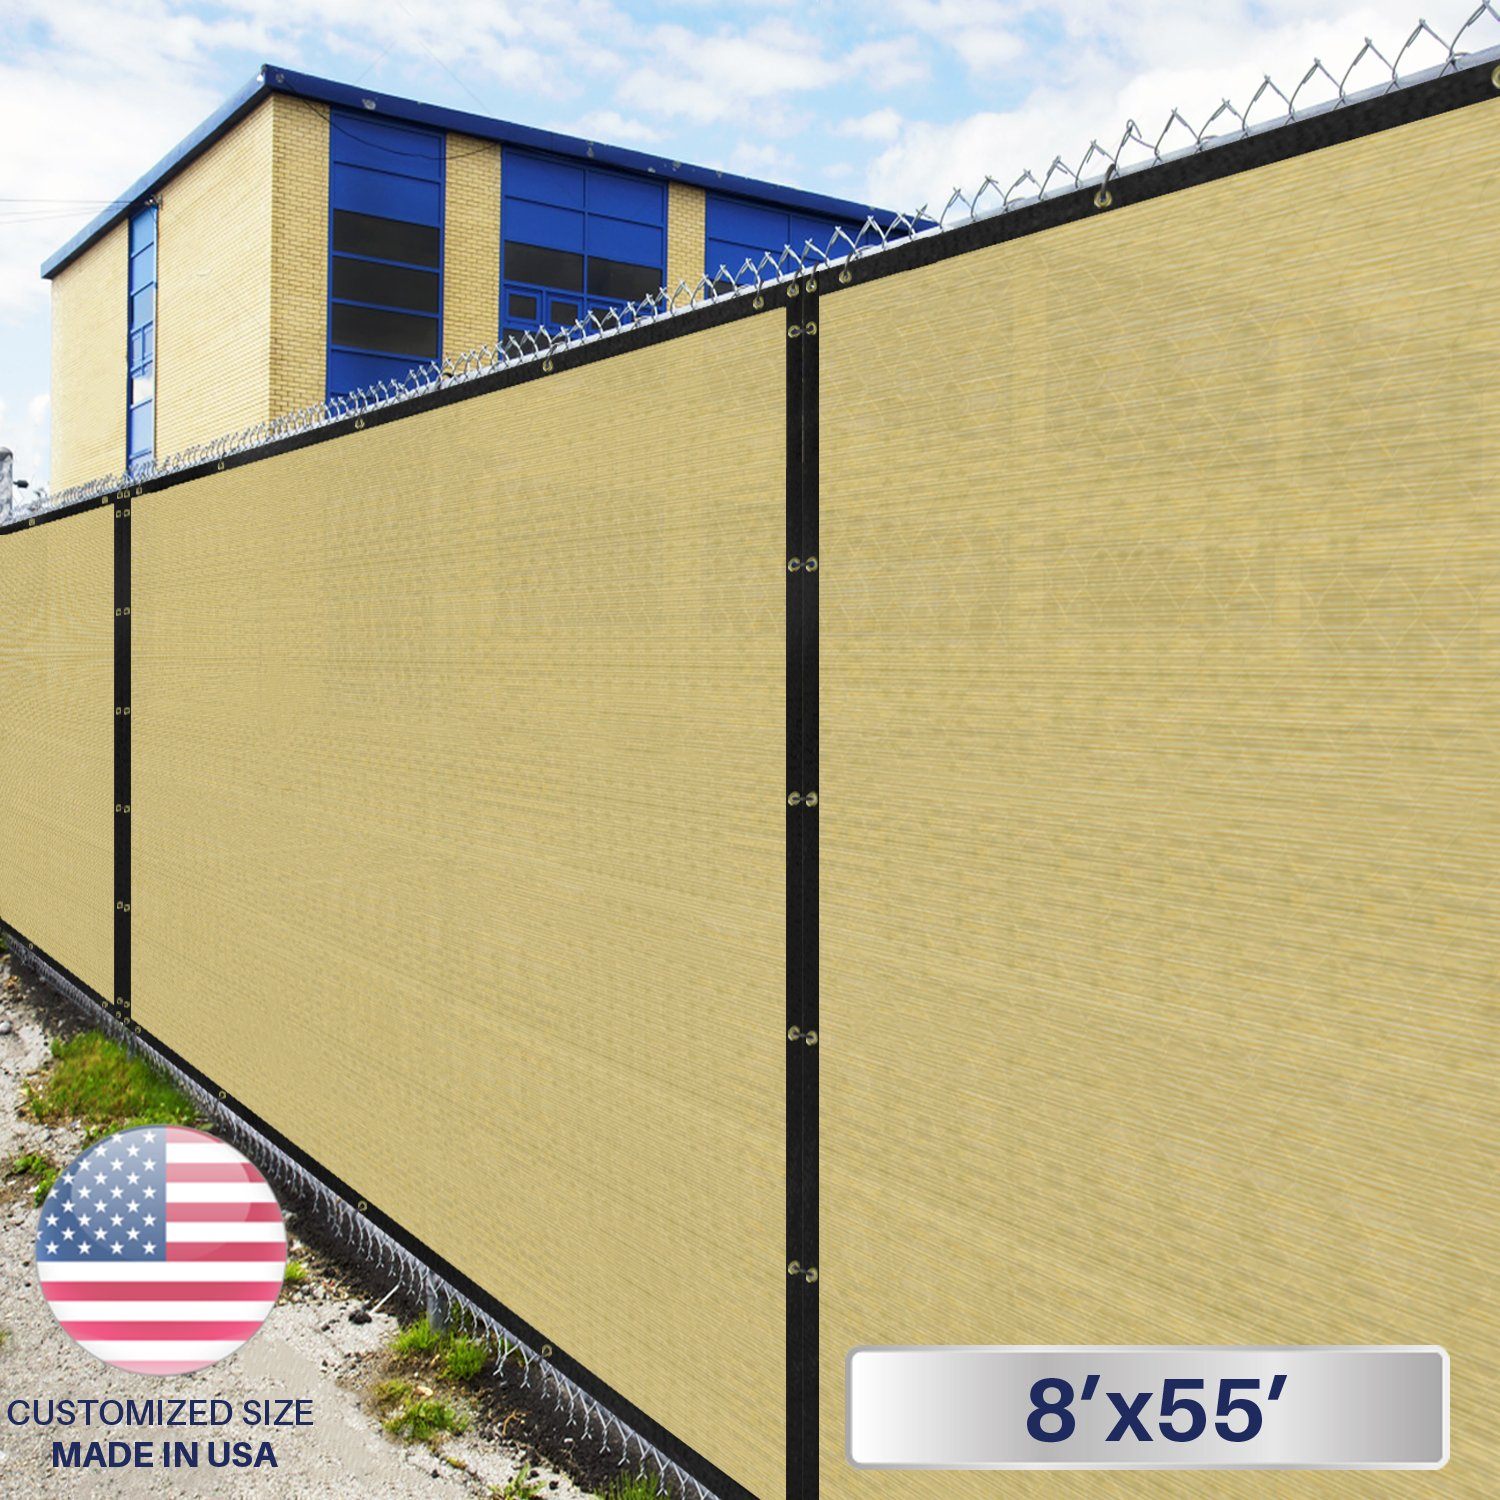 8' x 55' Privacy Fence Screen in Beige Tan with Brass Grommet 85% Blockage Windscreen Outdoor Mesh Fencing Cover Netting 150GSM Fabric - Custom Size